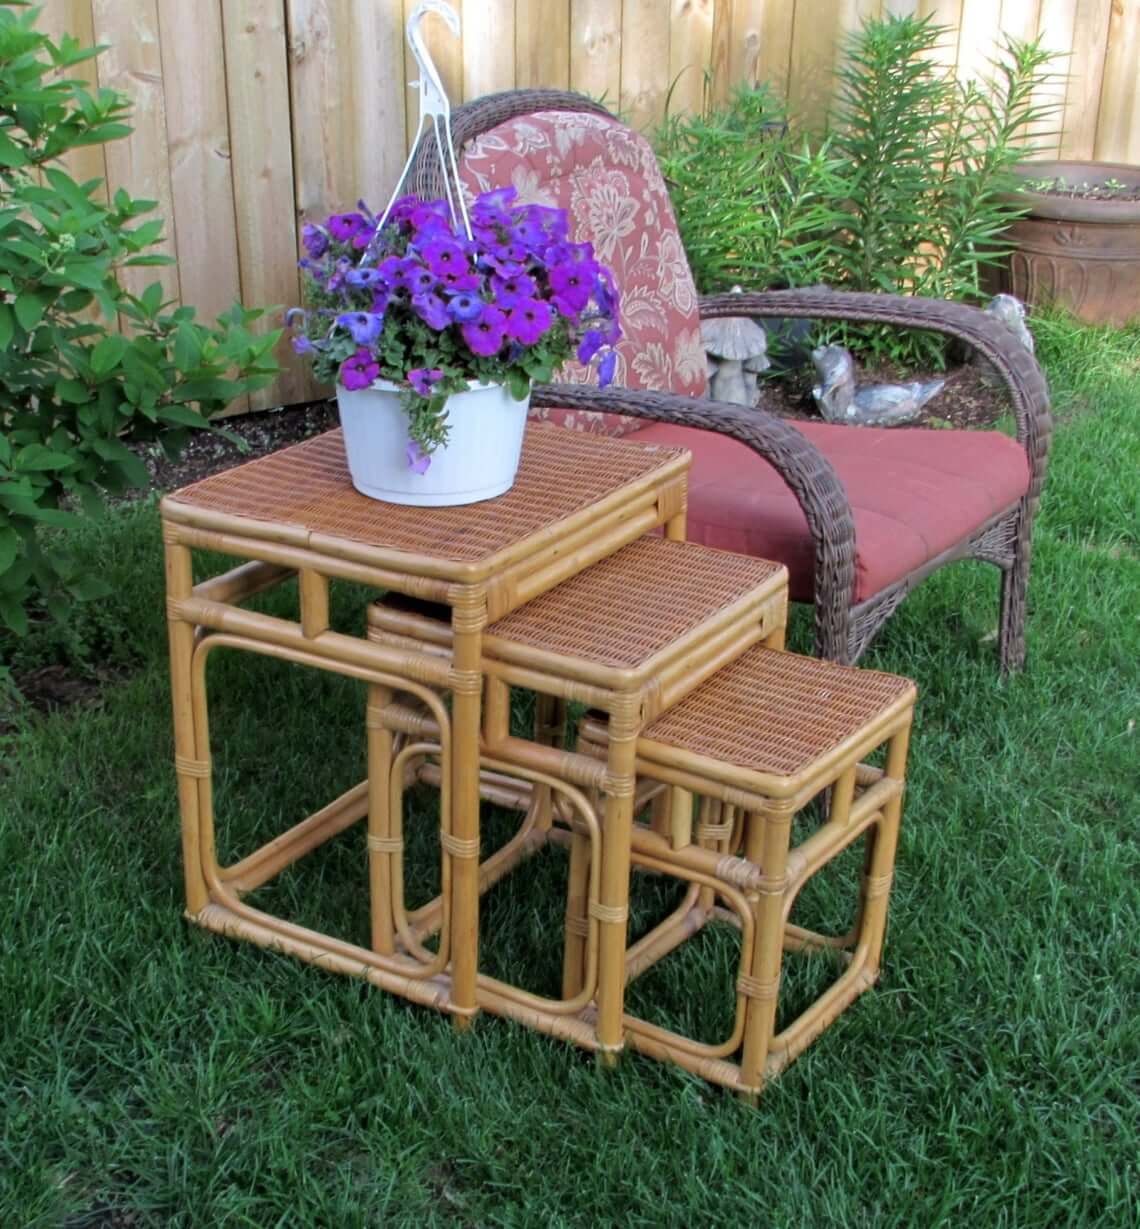 3-Piece Rattan Outdoor Nesting Tables